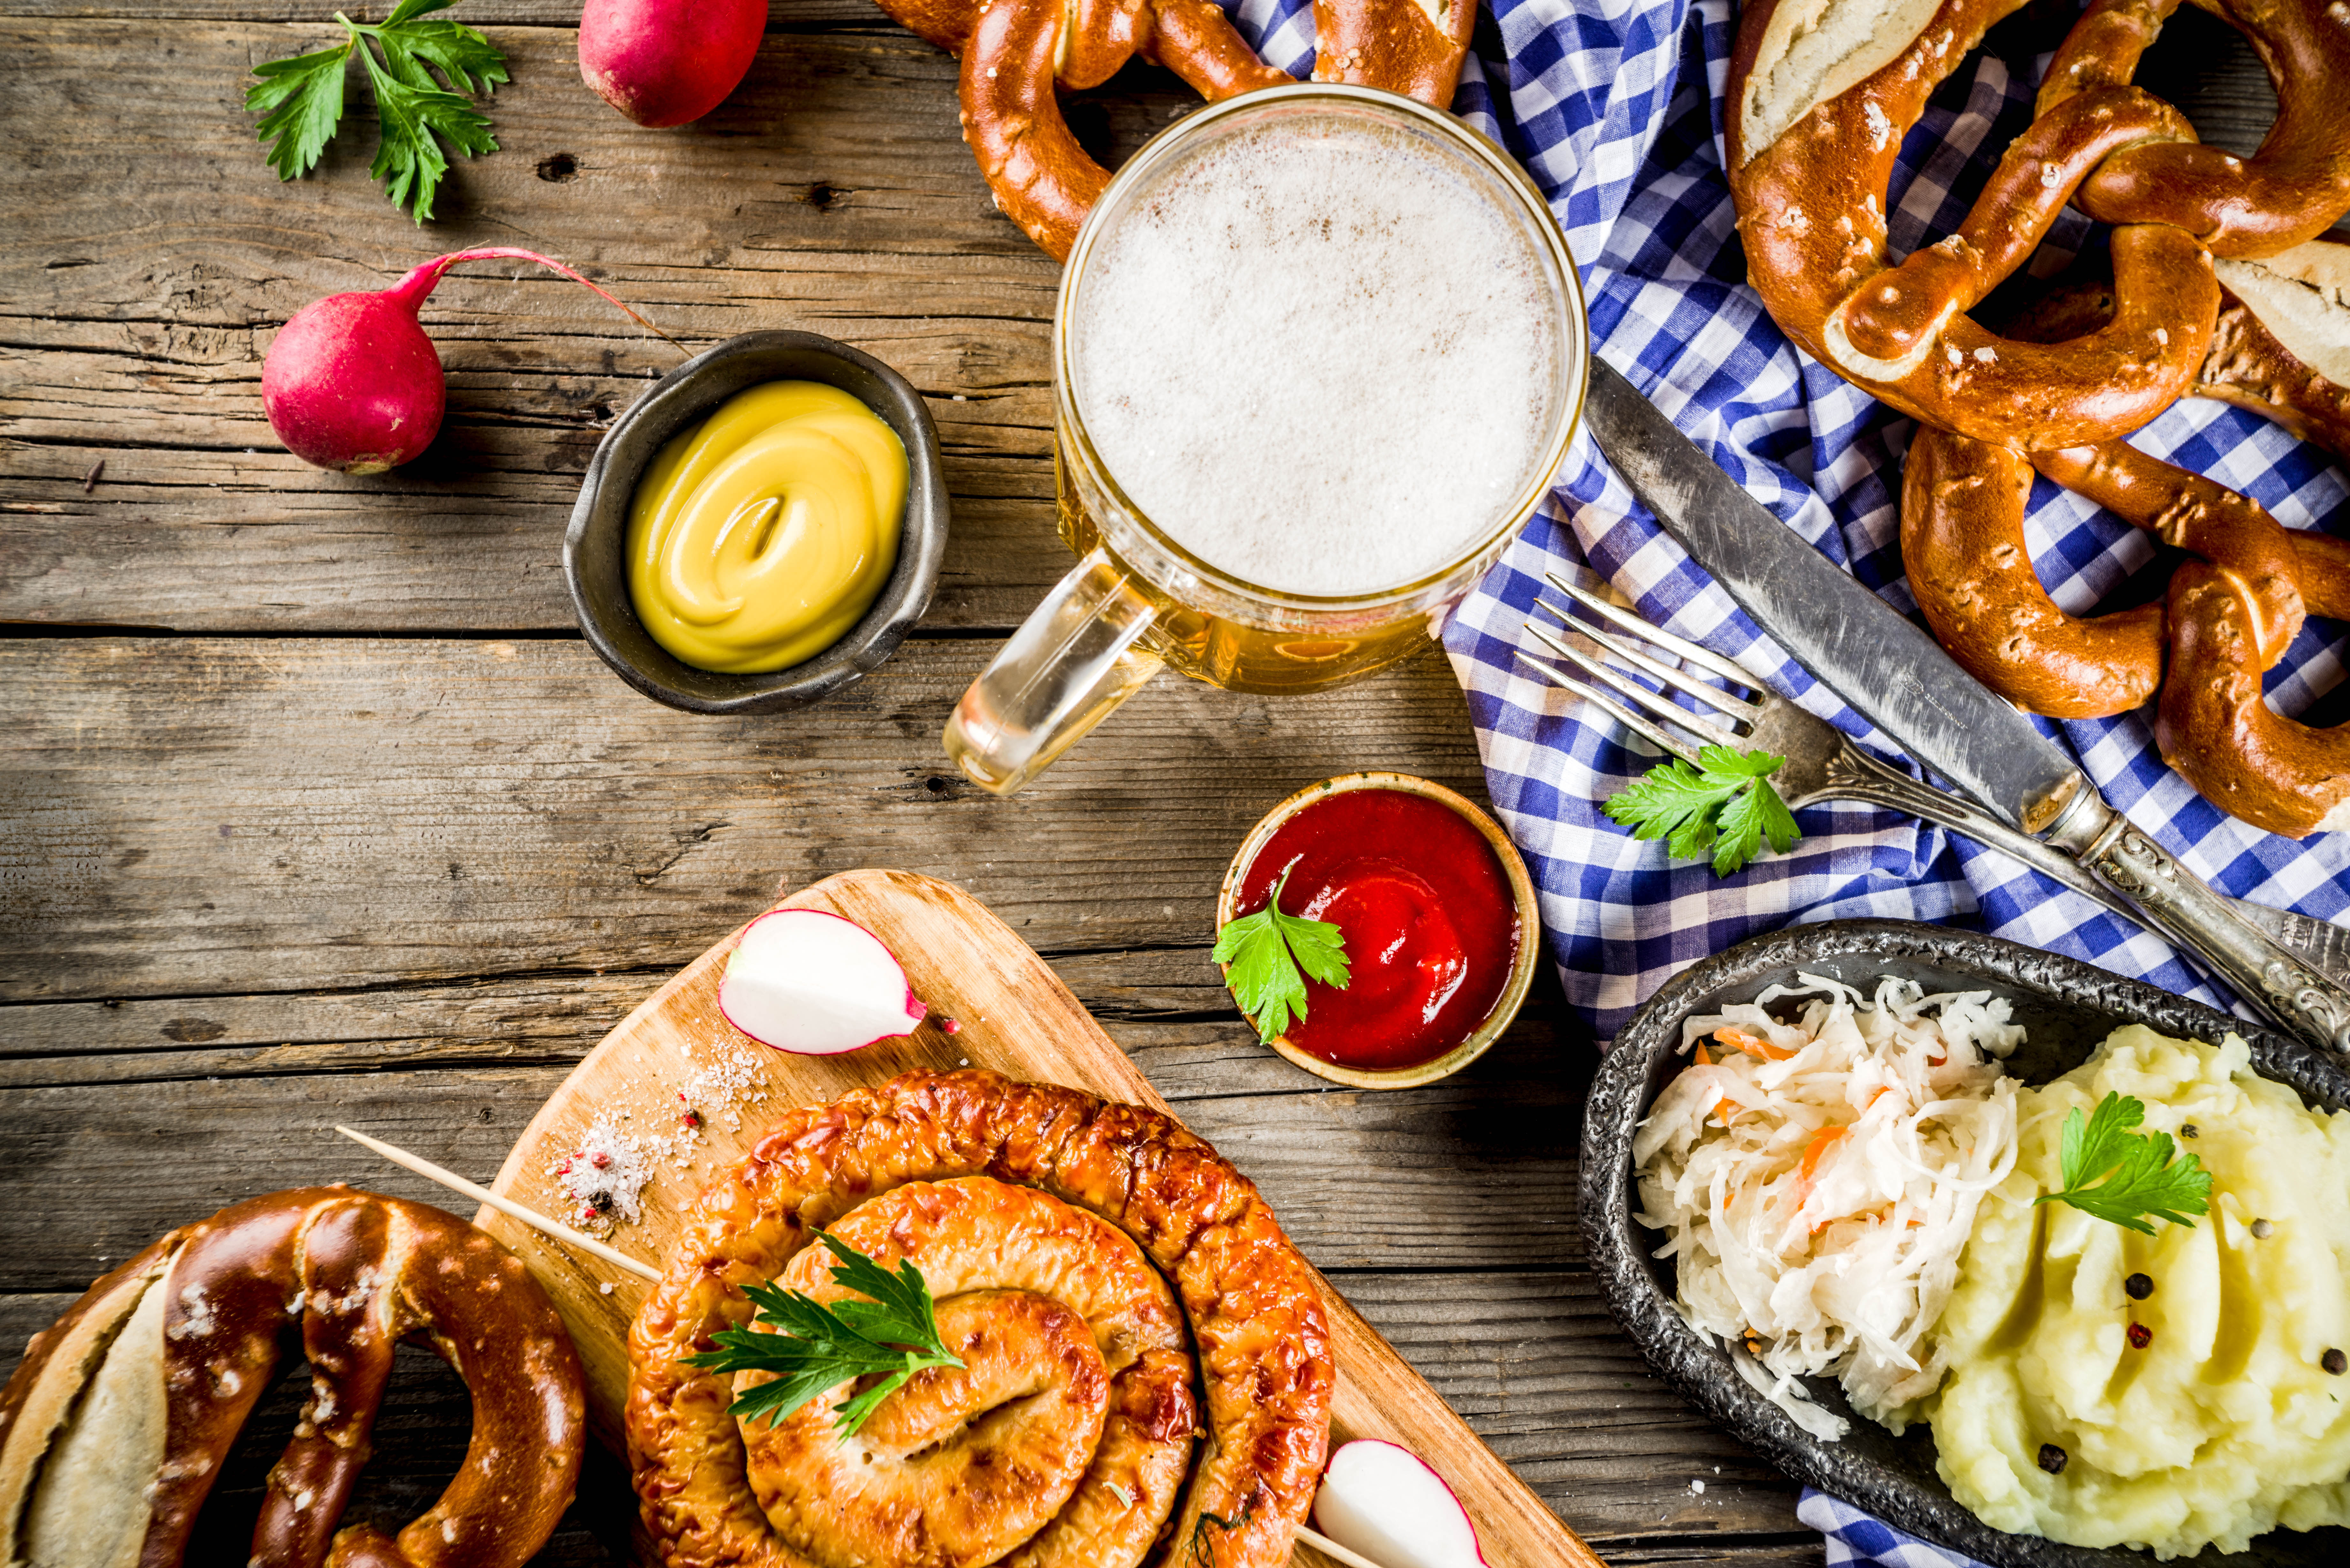 A top-down view of a food and drinks spread, with pretzels, a stein filled with beer, sausages, coleslaw, and potato salad